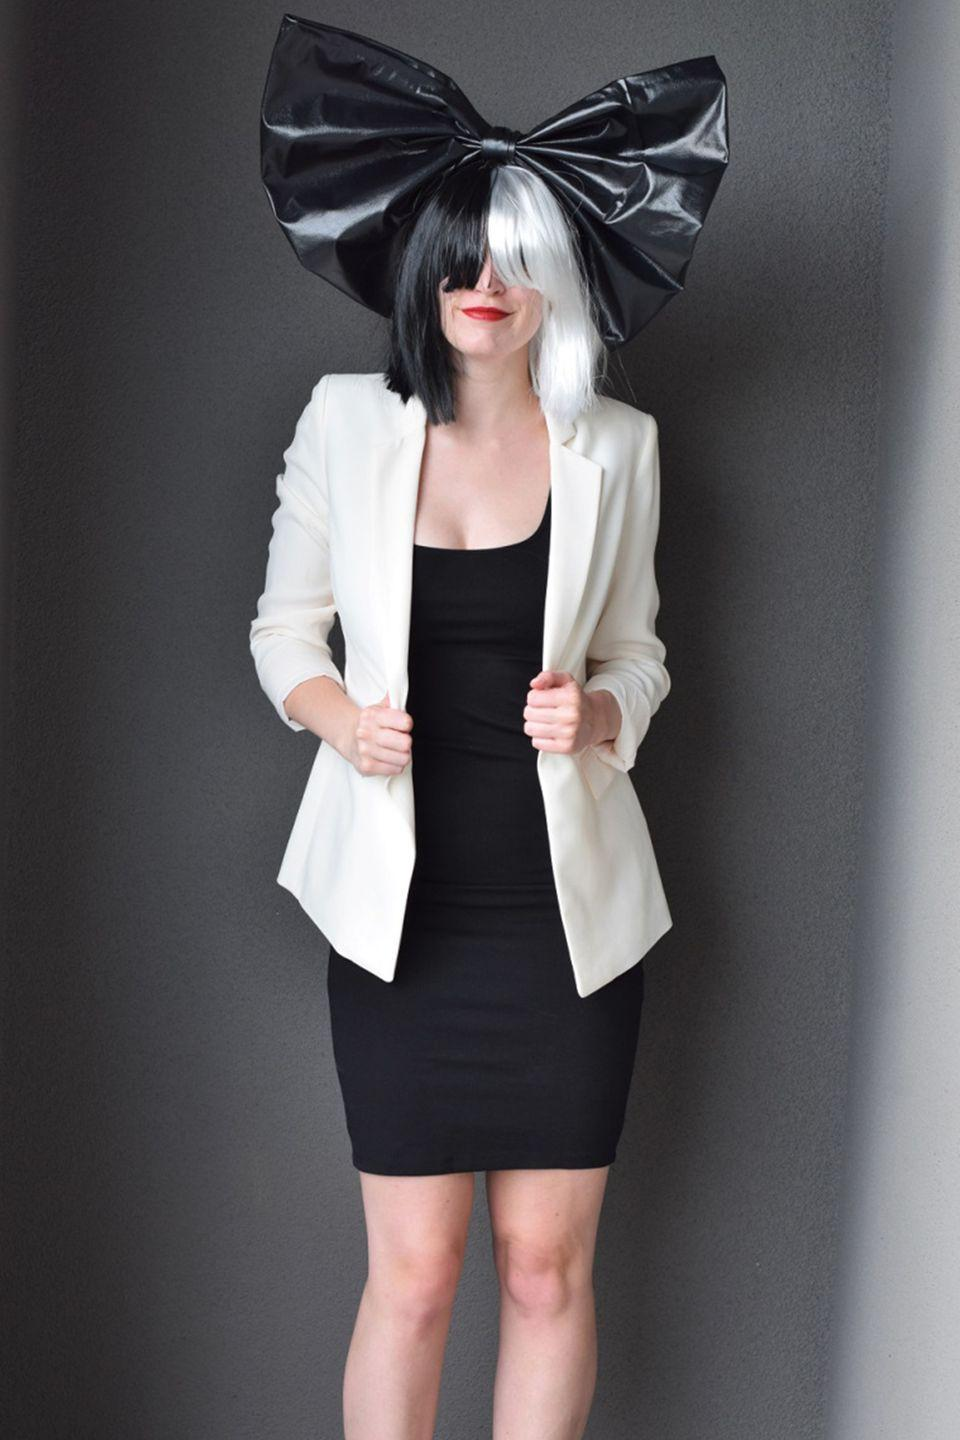 """<p>Here's a cheap thrill: The only thing you need to buy for this Sia costume is her signature two-toned wig. If you have a +1, convince them to dress up as Maddie Ziegler, so you can be a well-rounded pair. </p><p><a class=""""link rapid-noclick-resp"""" href=""""https://www.amazon.com/dp/B07KYDZNDY/ref=dp_prsubs_2?tag=syn-yahoo-20&ascsubtag=%5Bartid%7C10055.g.2750%5Bsrc%7Cyahoo-us"""" rel=""""nofollow noopener"""" target=""""_blank"""" data-ylk=""""slk:SHOP WIGS"""">SHOP WIGS</a></p><p><em><a href=""""https://bunnybaubles.com/2016/10/24/diy-sia-costume/"""" rel=""""nofollow noopener"""" target=""""_blank"""" data-ylk=""""slk:See more on Bunny Baubles »"""" class=""""link rapid-noclick-resp"""">See more on Bunny Baubles »</a></em></p>"""